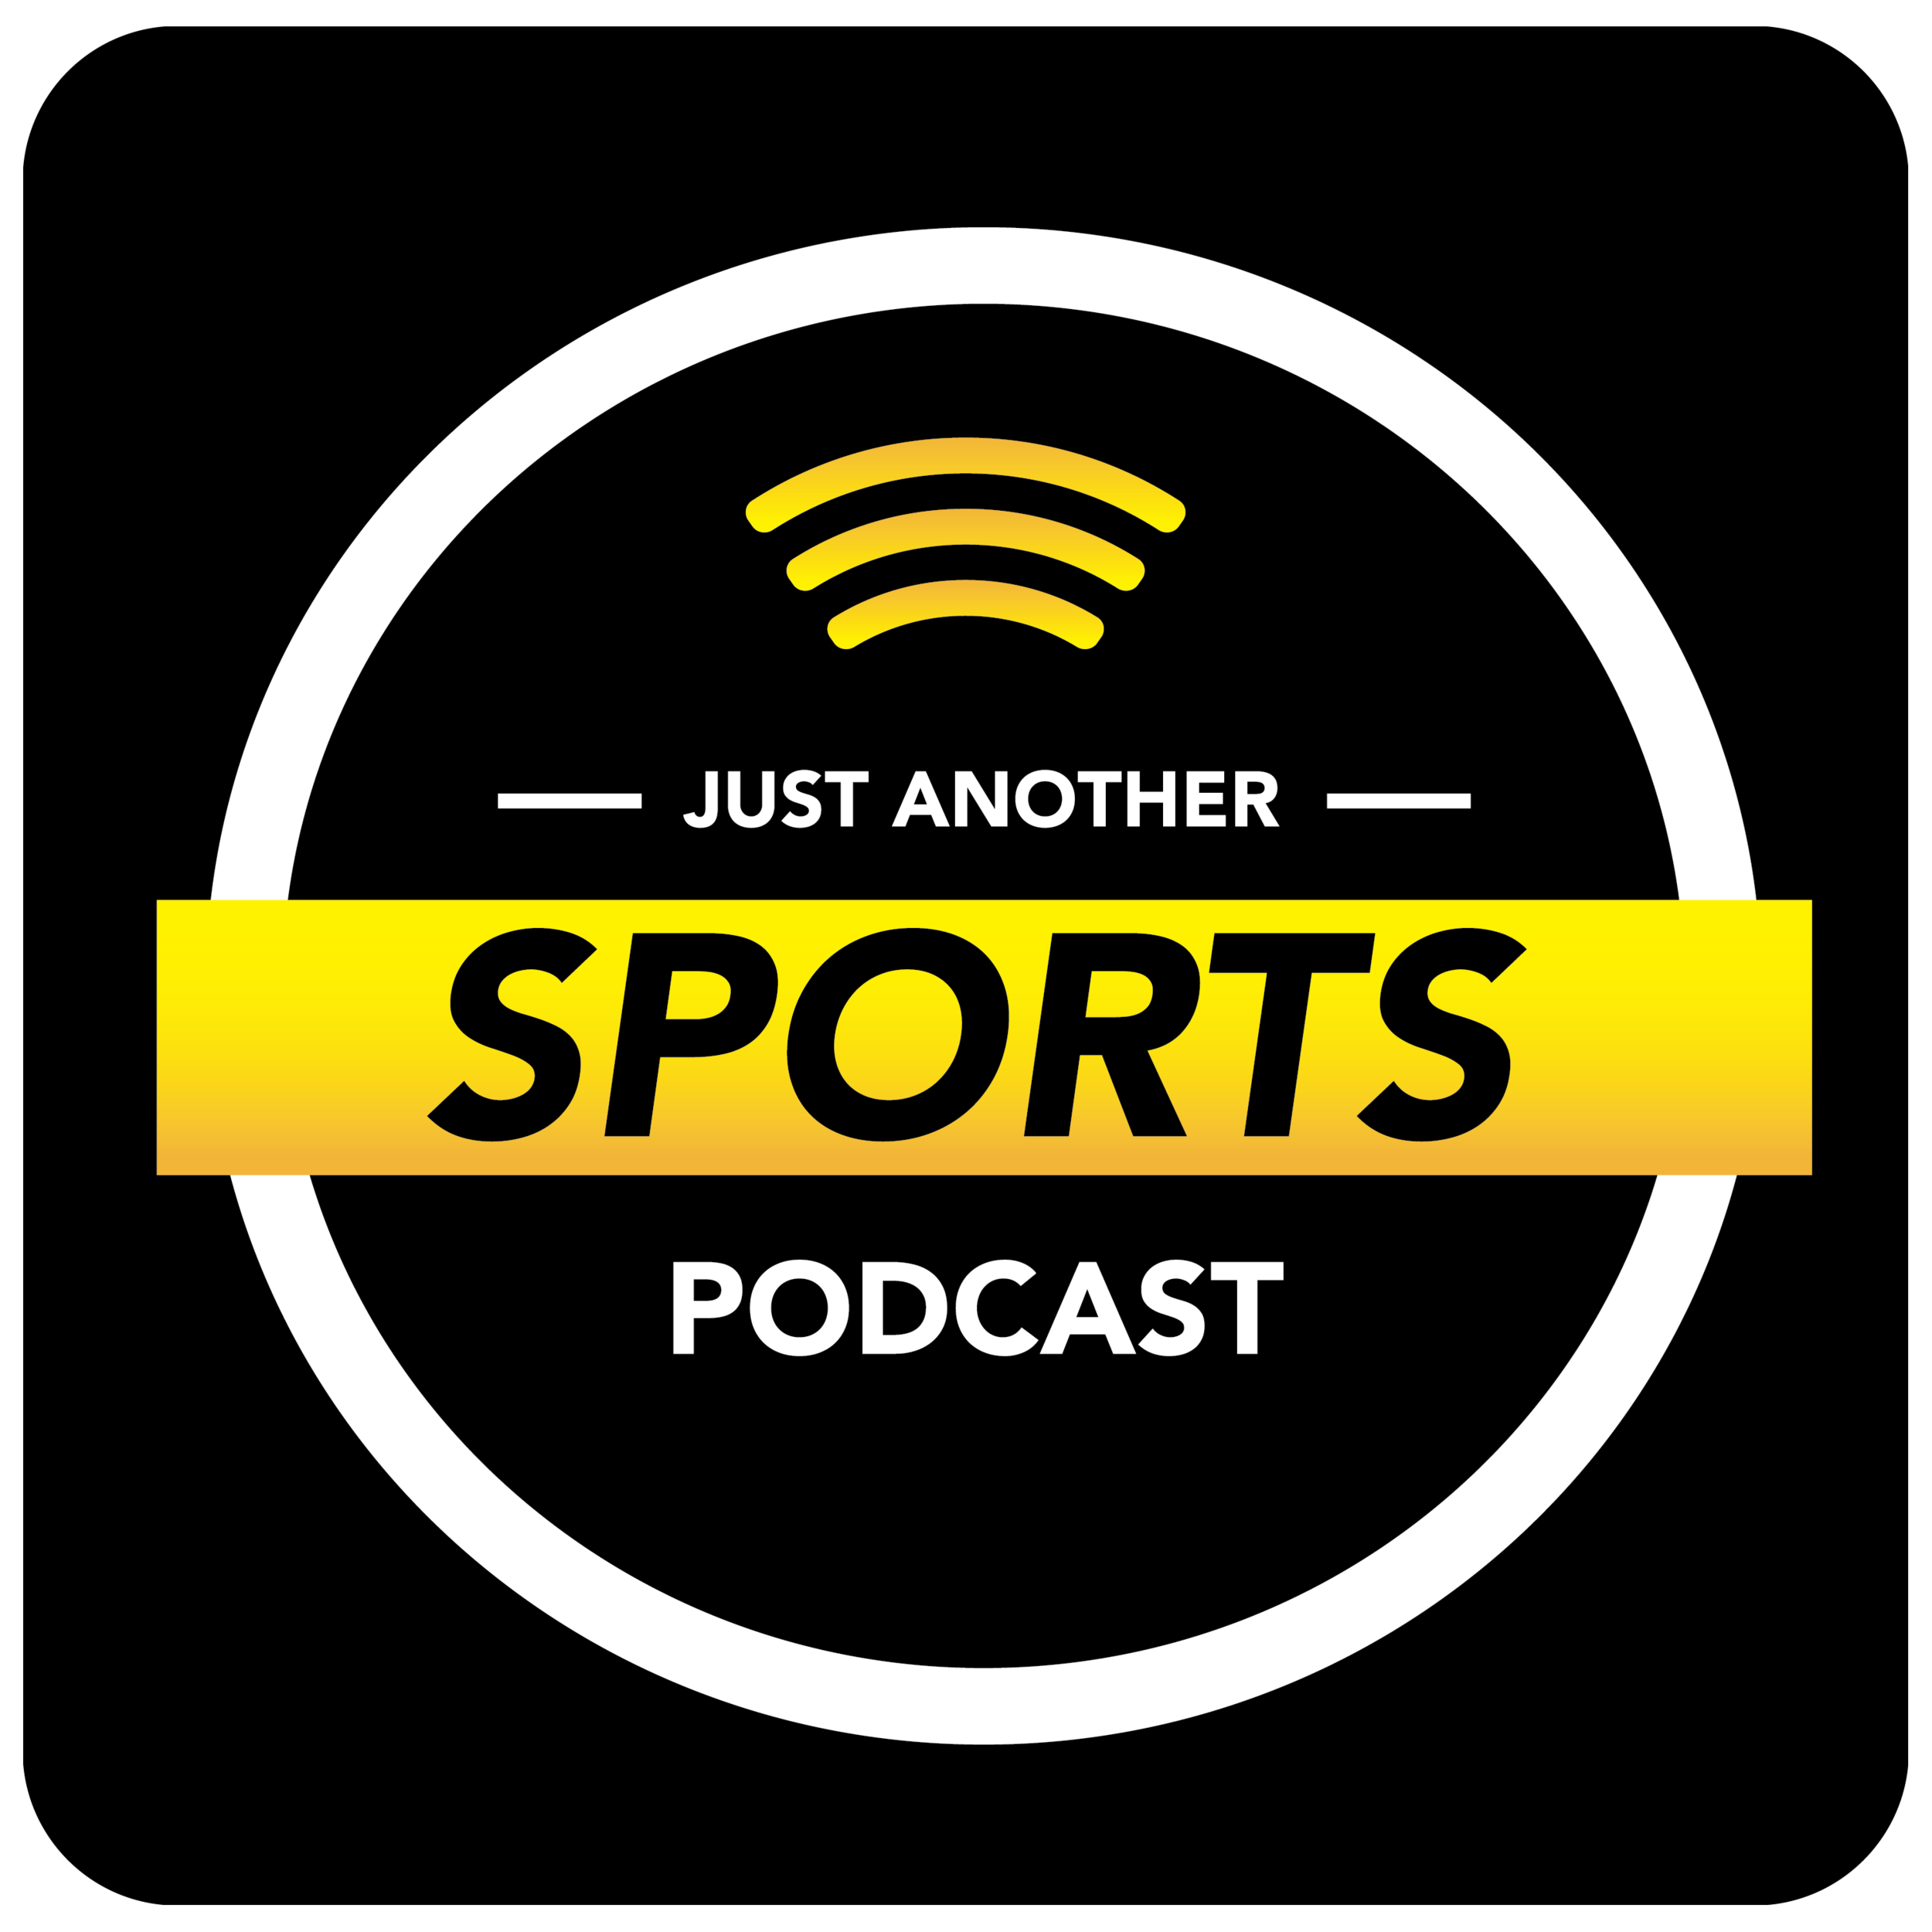 JustAnotherSportsPodcast 3000px.png